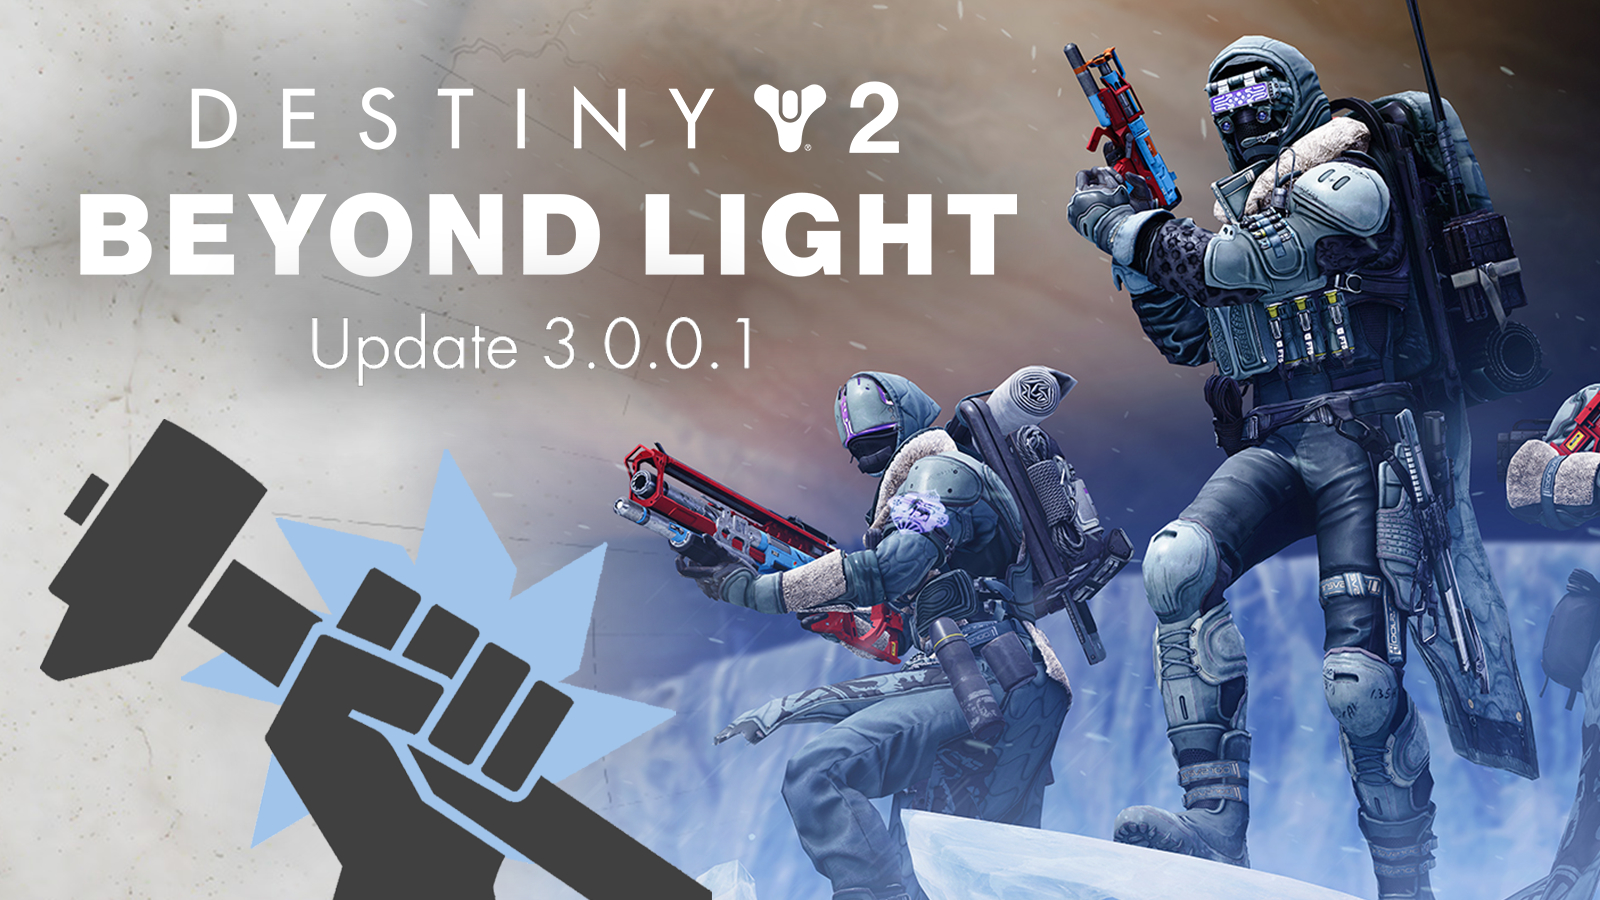 Destiny 2 Beyond Light update 3.0.0.1 patch notes on Guardian image.